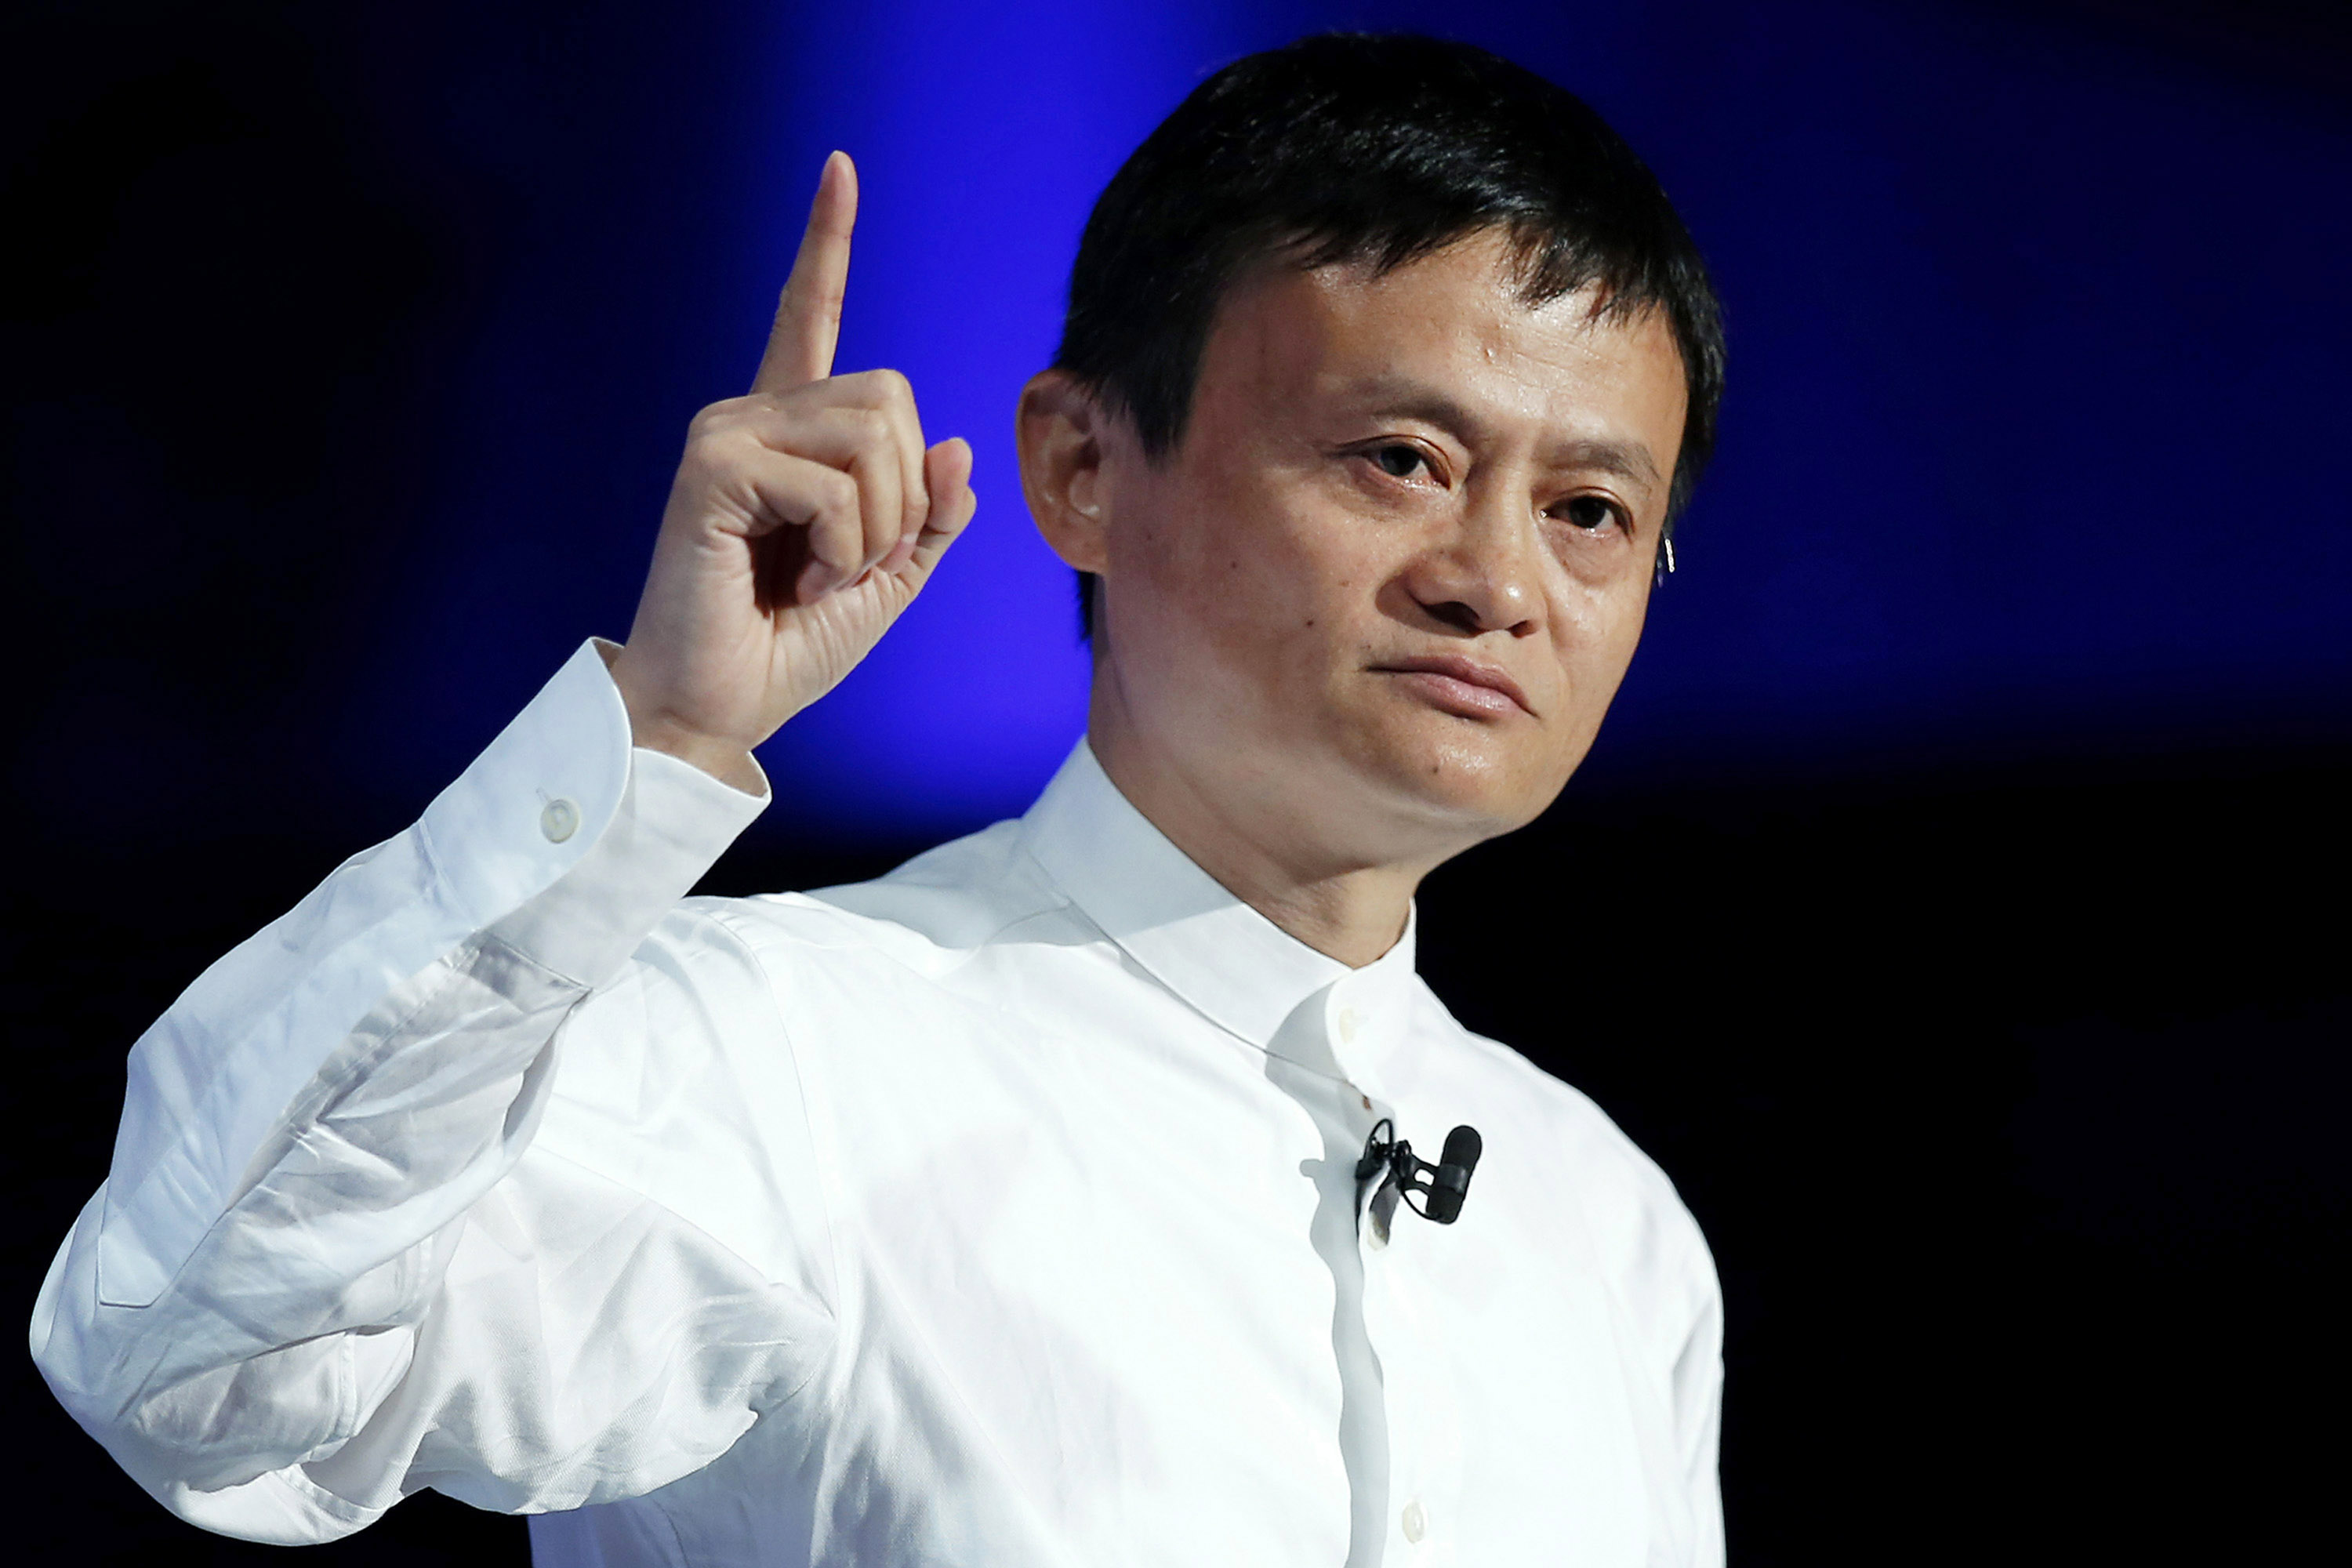 Jack Ma, chairman of Alibaba Group Holding Ltd., gestures as he speaks at SoftBank World 2014 in Tokyo, Japan, on Tuesday, July 15, 2014. As SoftBank Corp. Chief Executive Officer Masayoshi Son pushes for a takeover of T-Mobile US Inc., the Japanese billionaire is asking banks to commit financing for a longer-than-usual amount of time, underscoring the intense regulatory review he faces. Photographer: Kiyoshi Ota/Bloomberg *** Local Caption *** Jack Ma